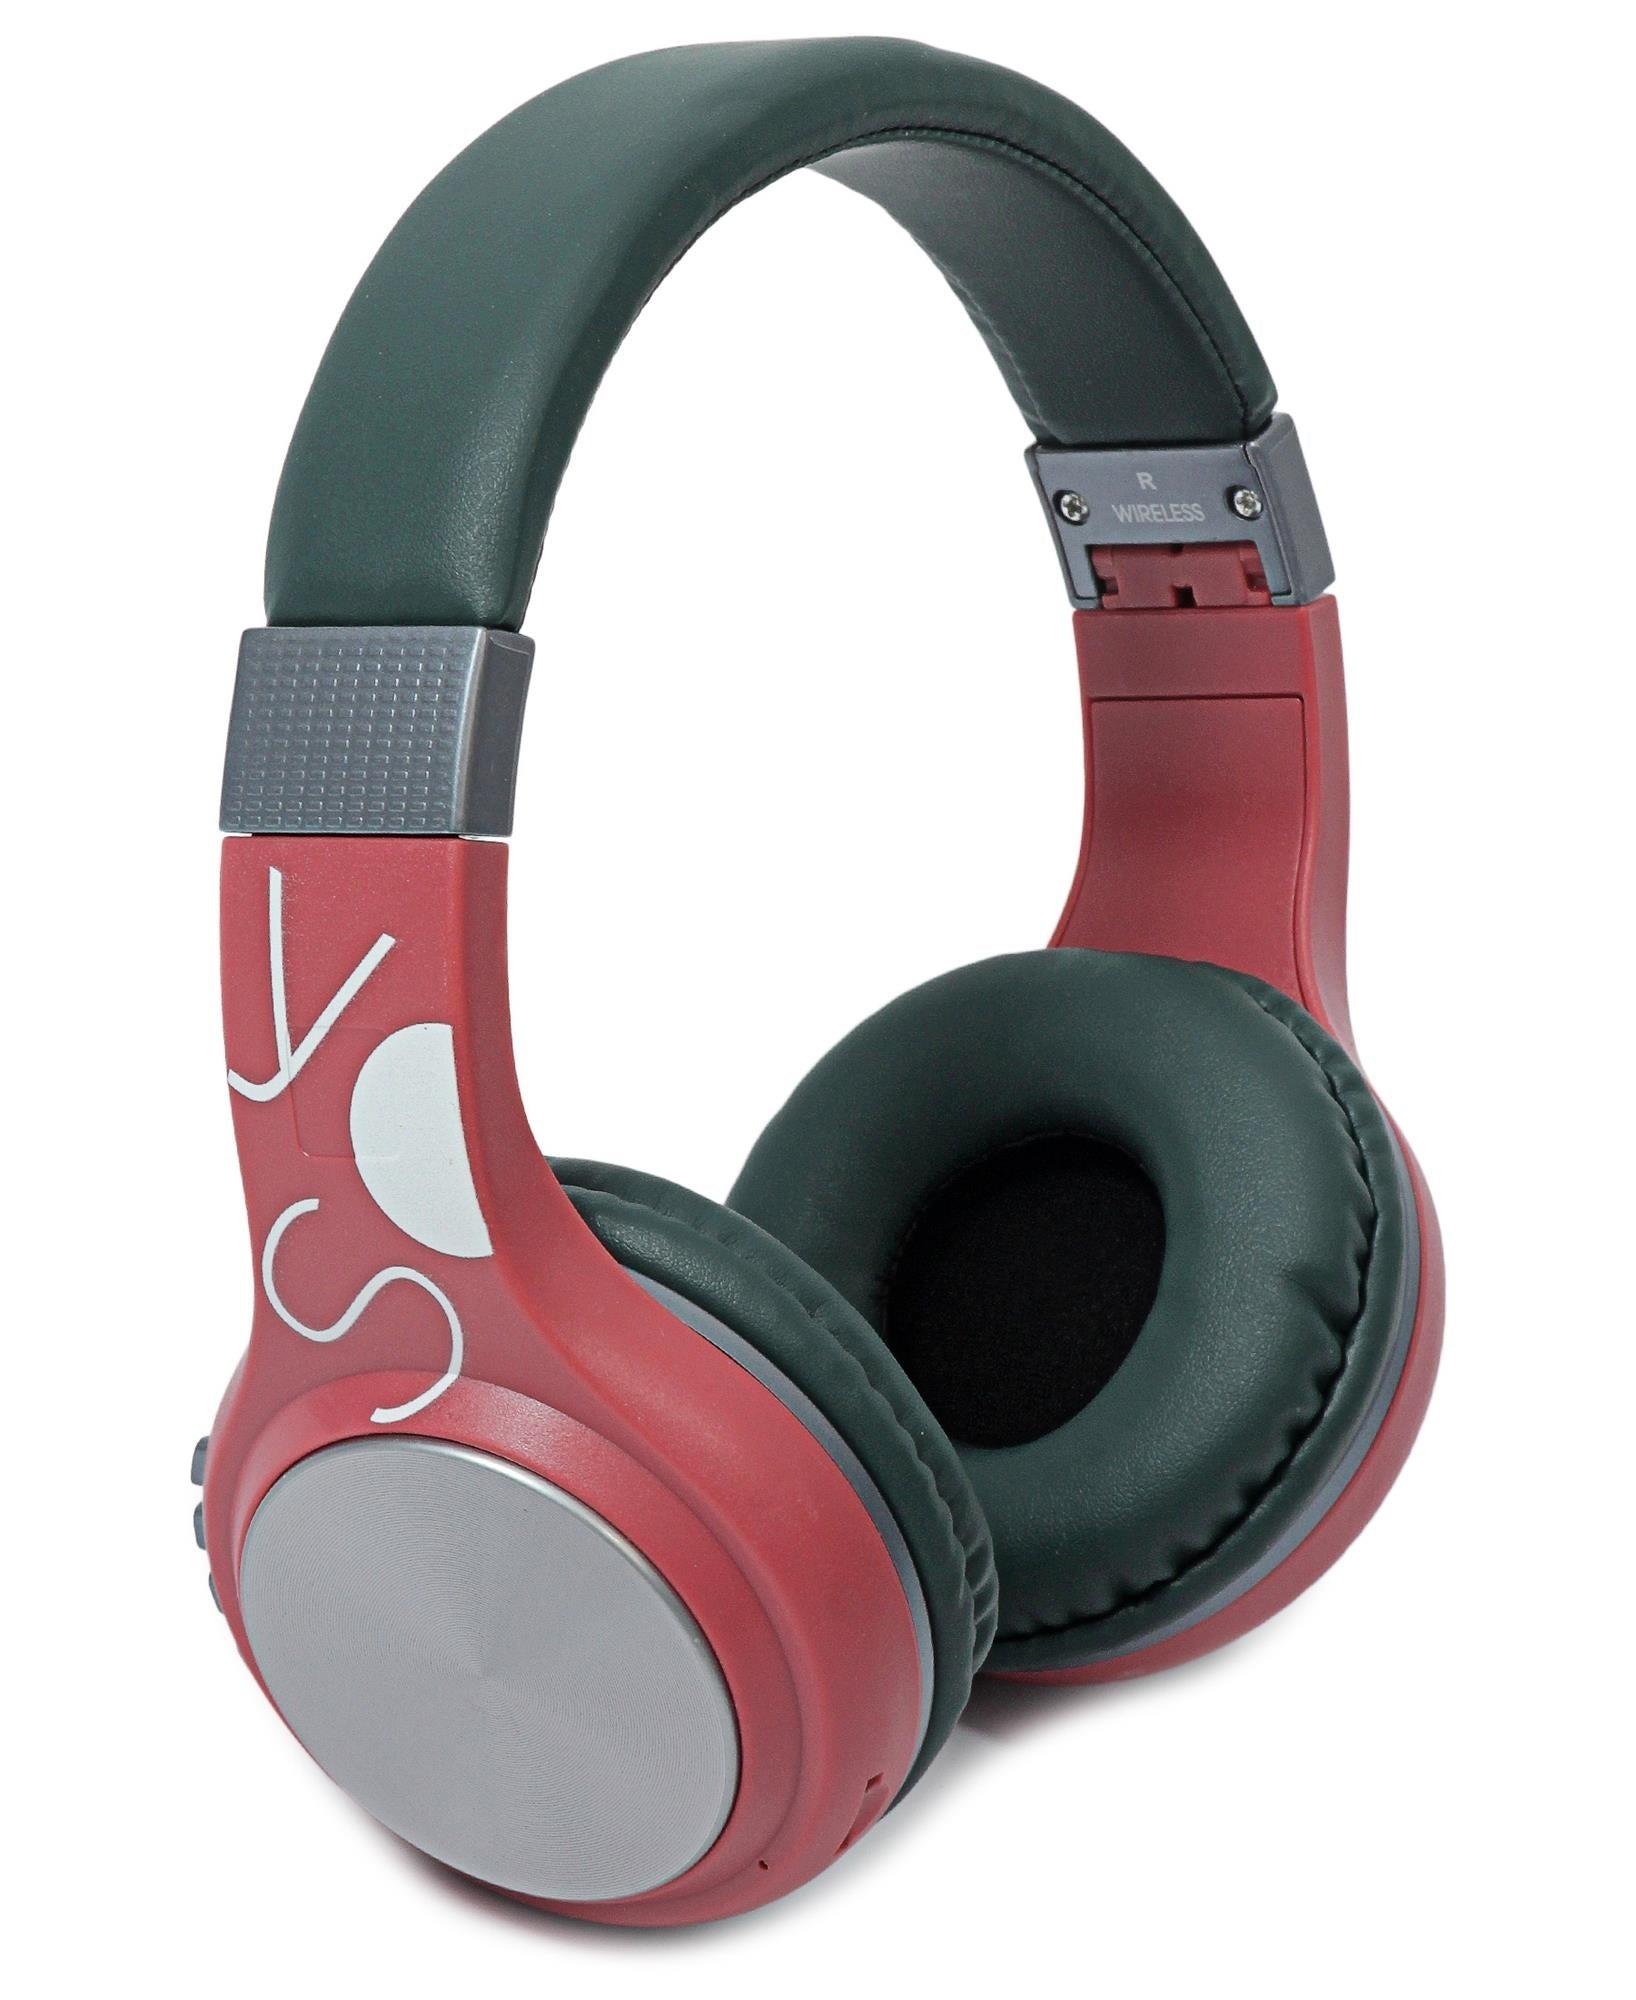 Wireless Headphones - Red